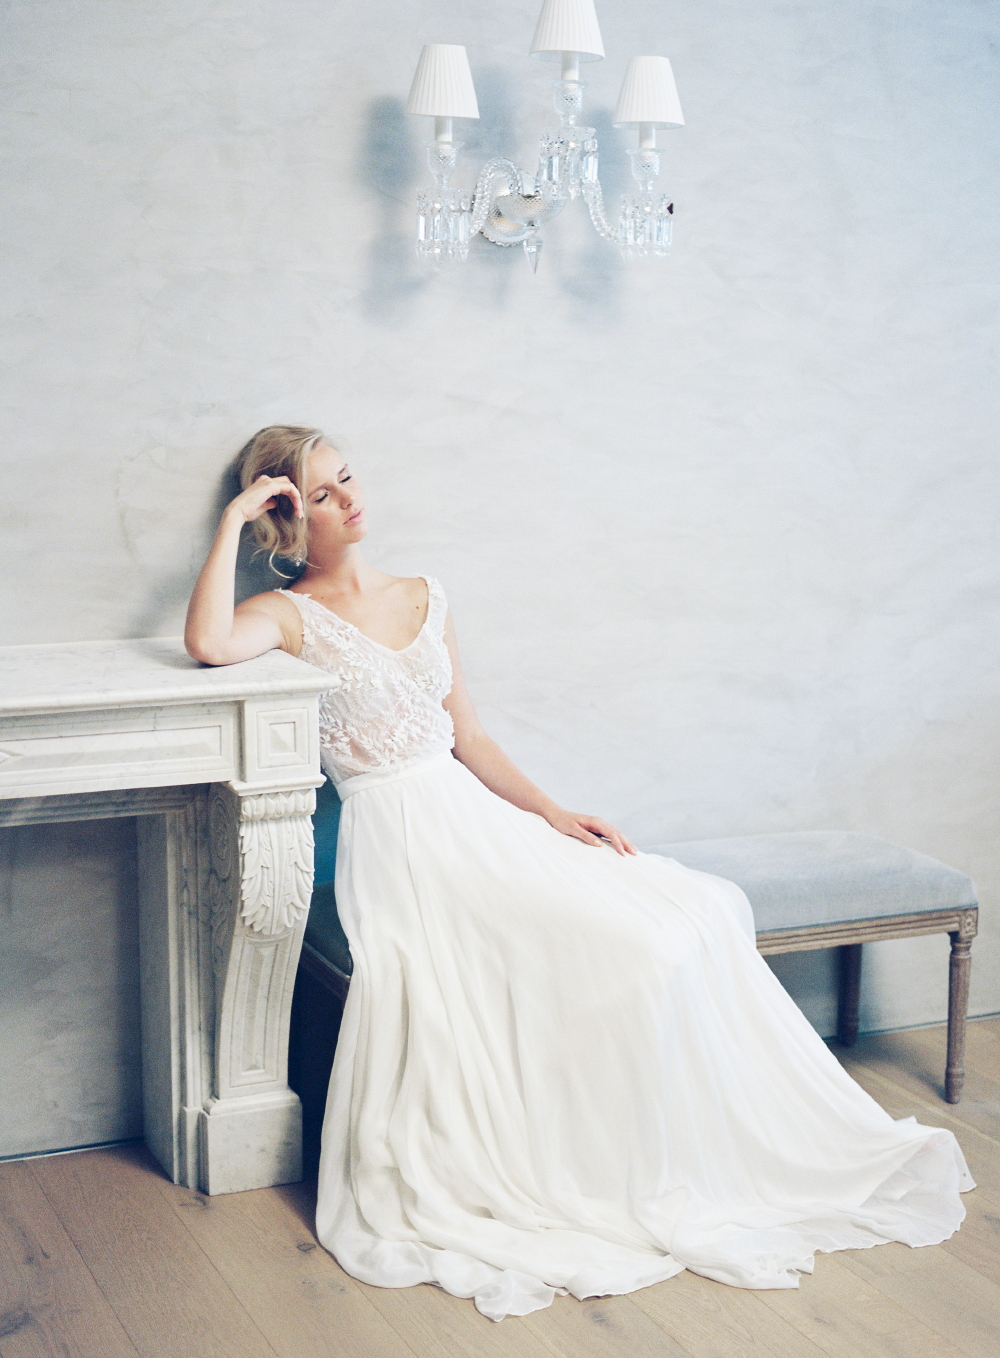 Maguretta bridal gown by Tanya Anic